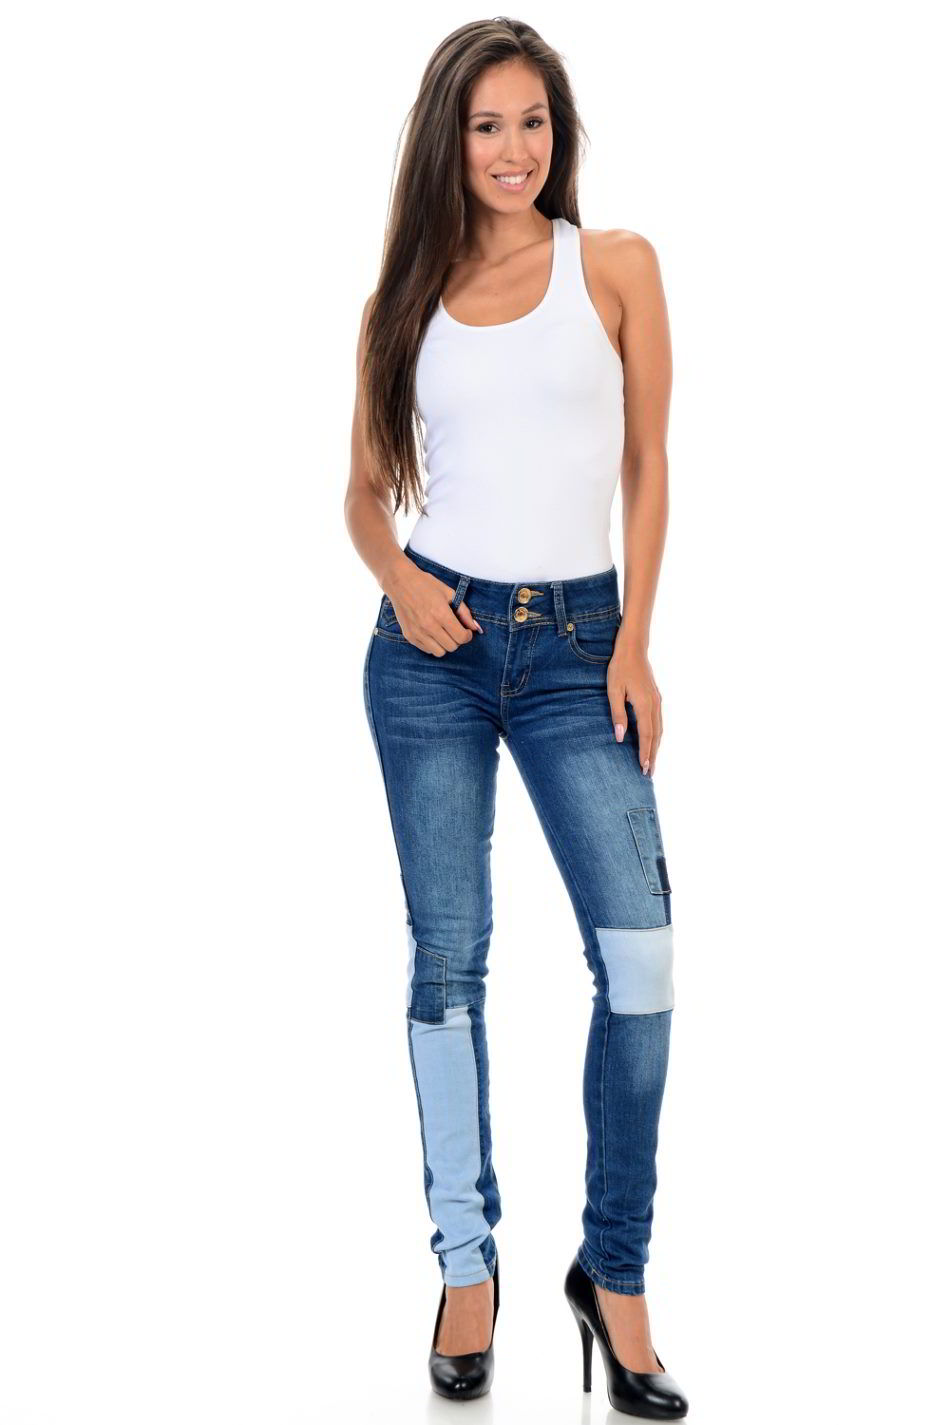 Sweet Look Premium Edition Women's Jeans - Push Up - Style X06